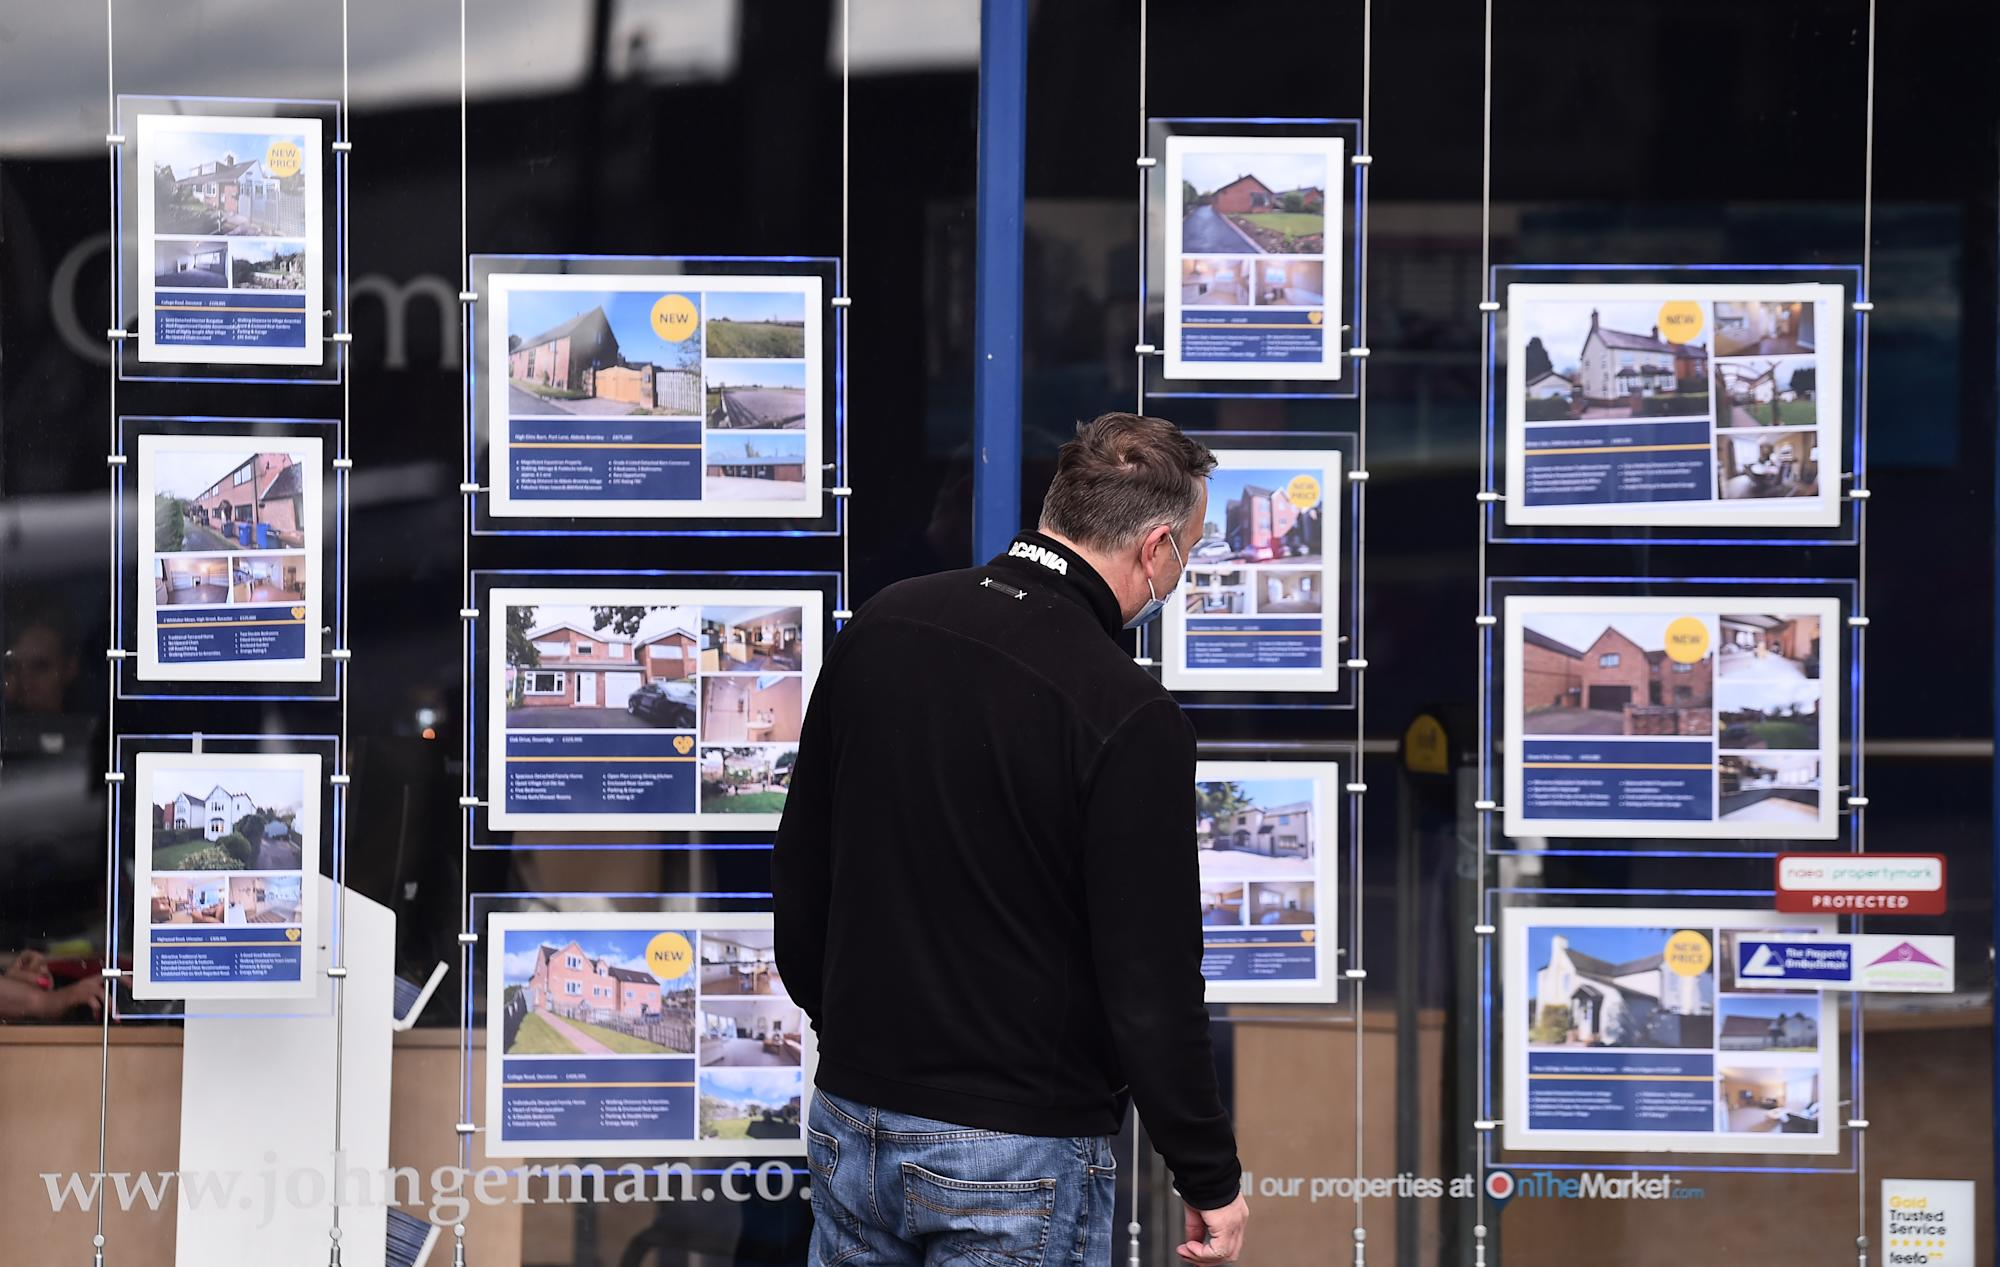 UK property records continue as house prices hit new high